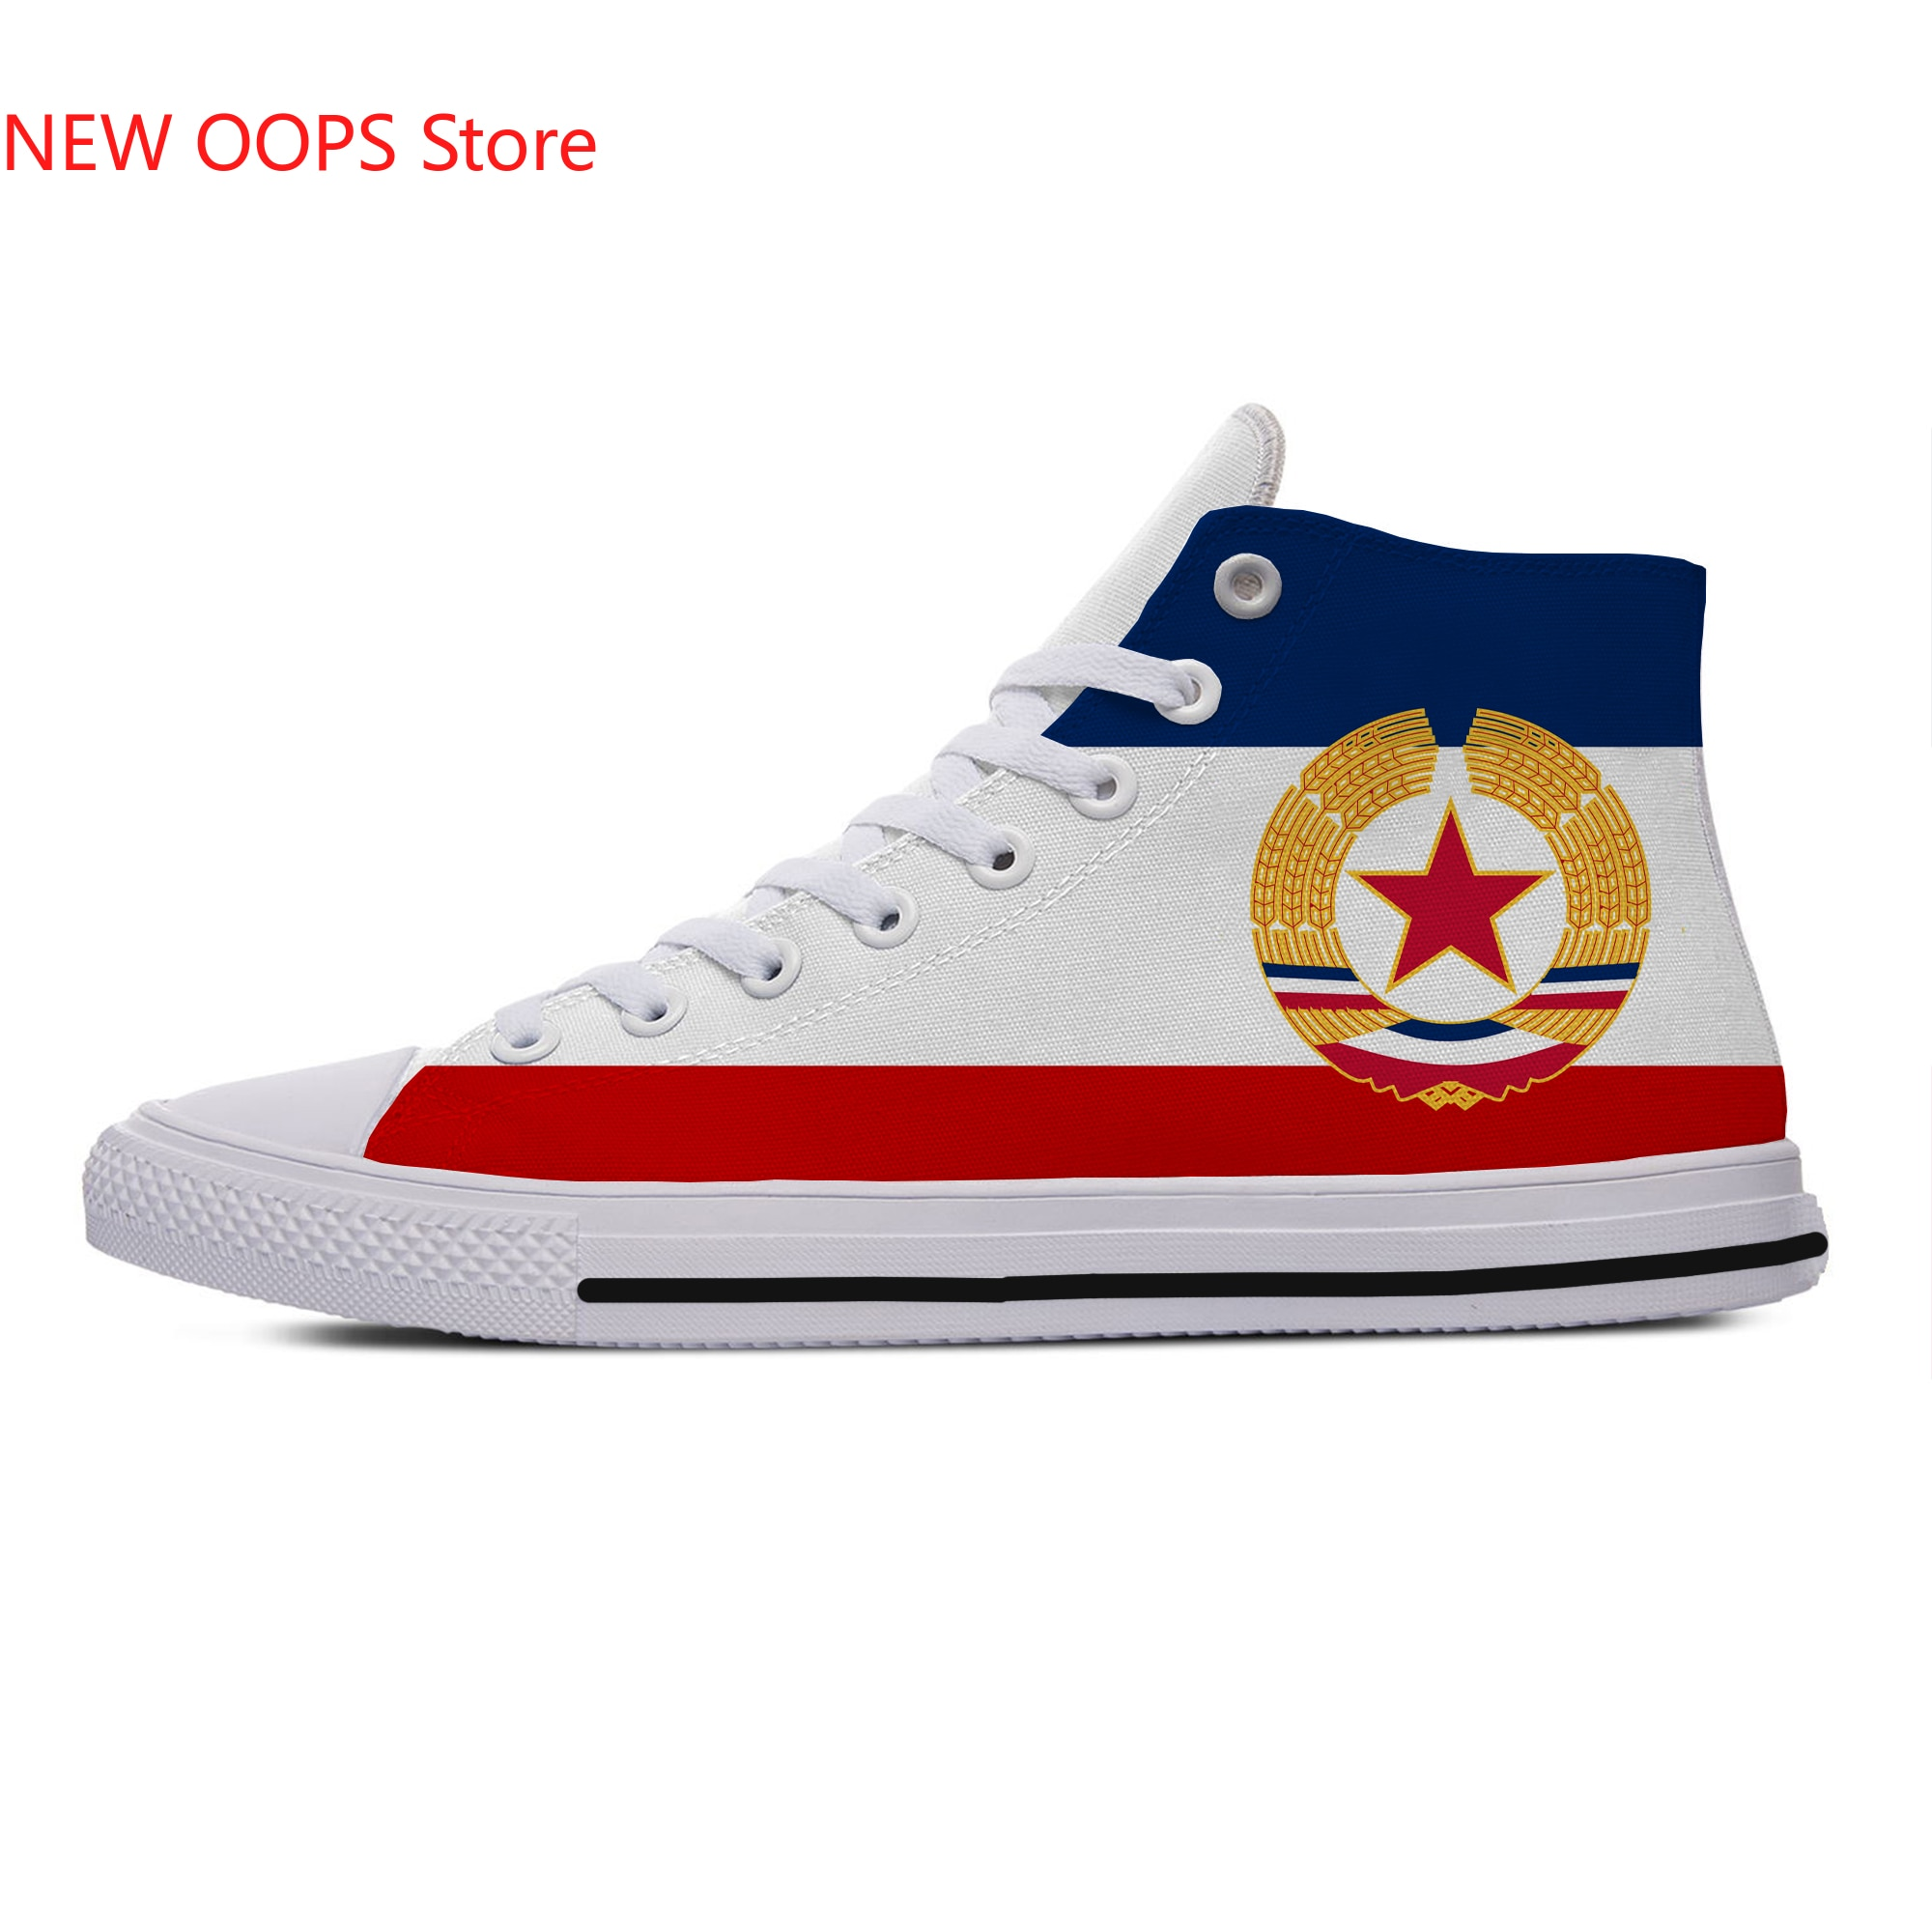 flag of yugoslavia New Arrive Fashion Lightweight High Top Canvas Shoes Men Women Casual Breathable Sneakers